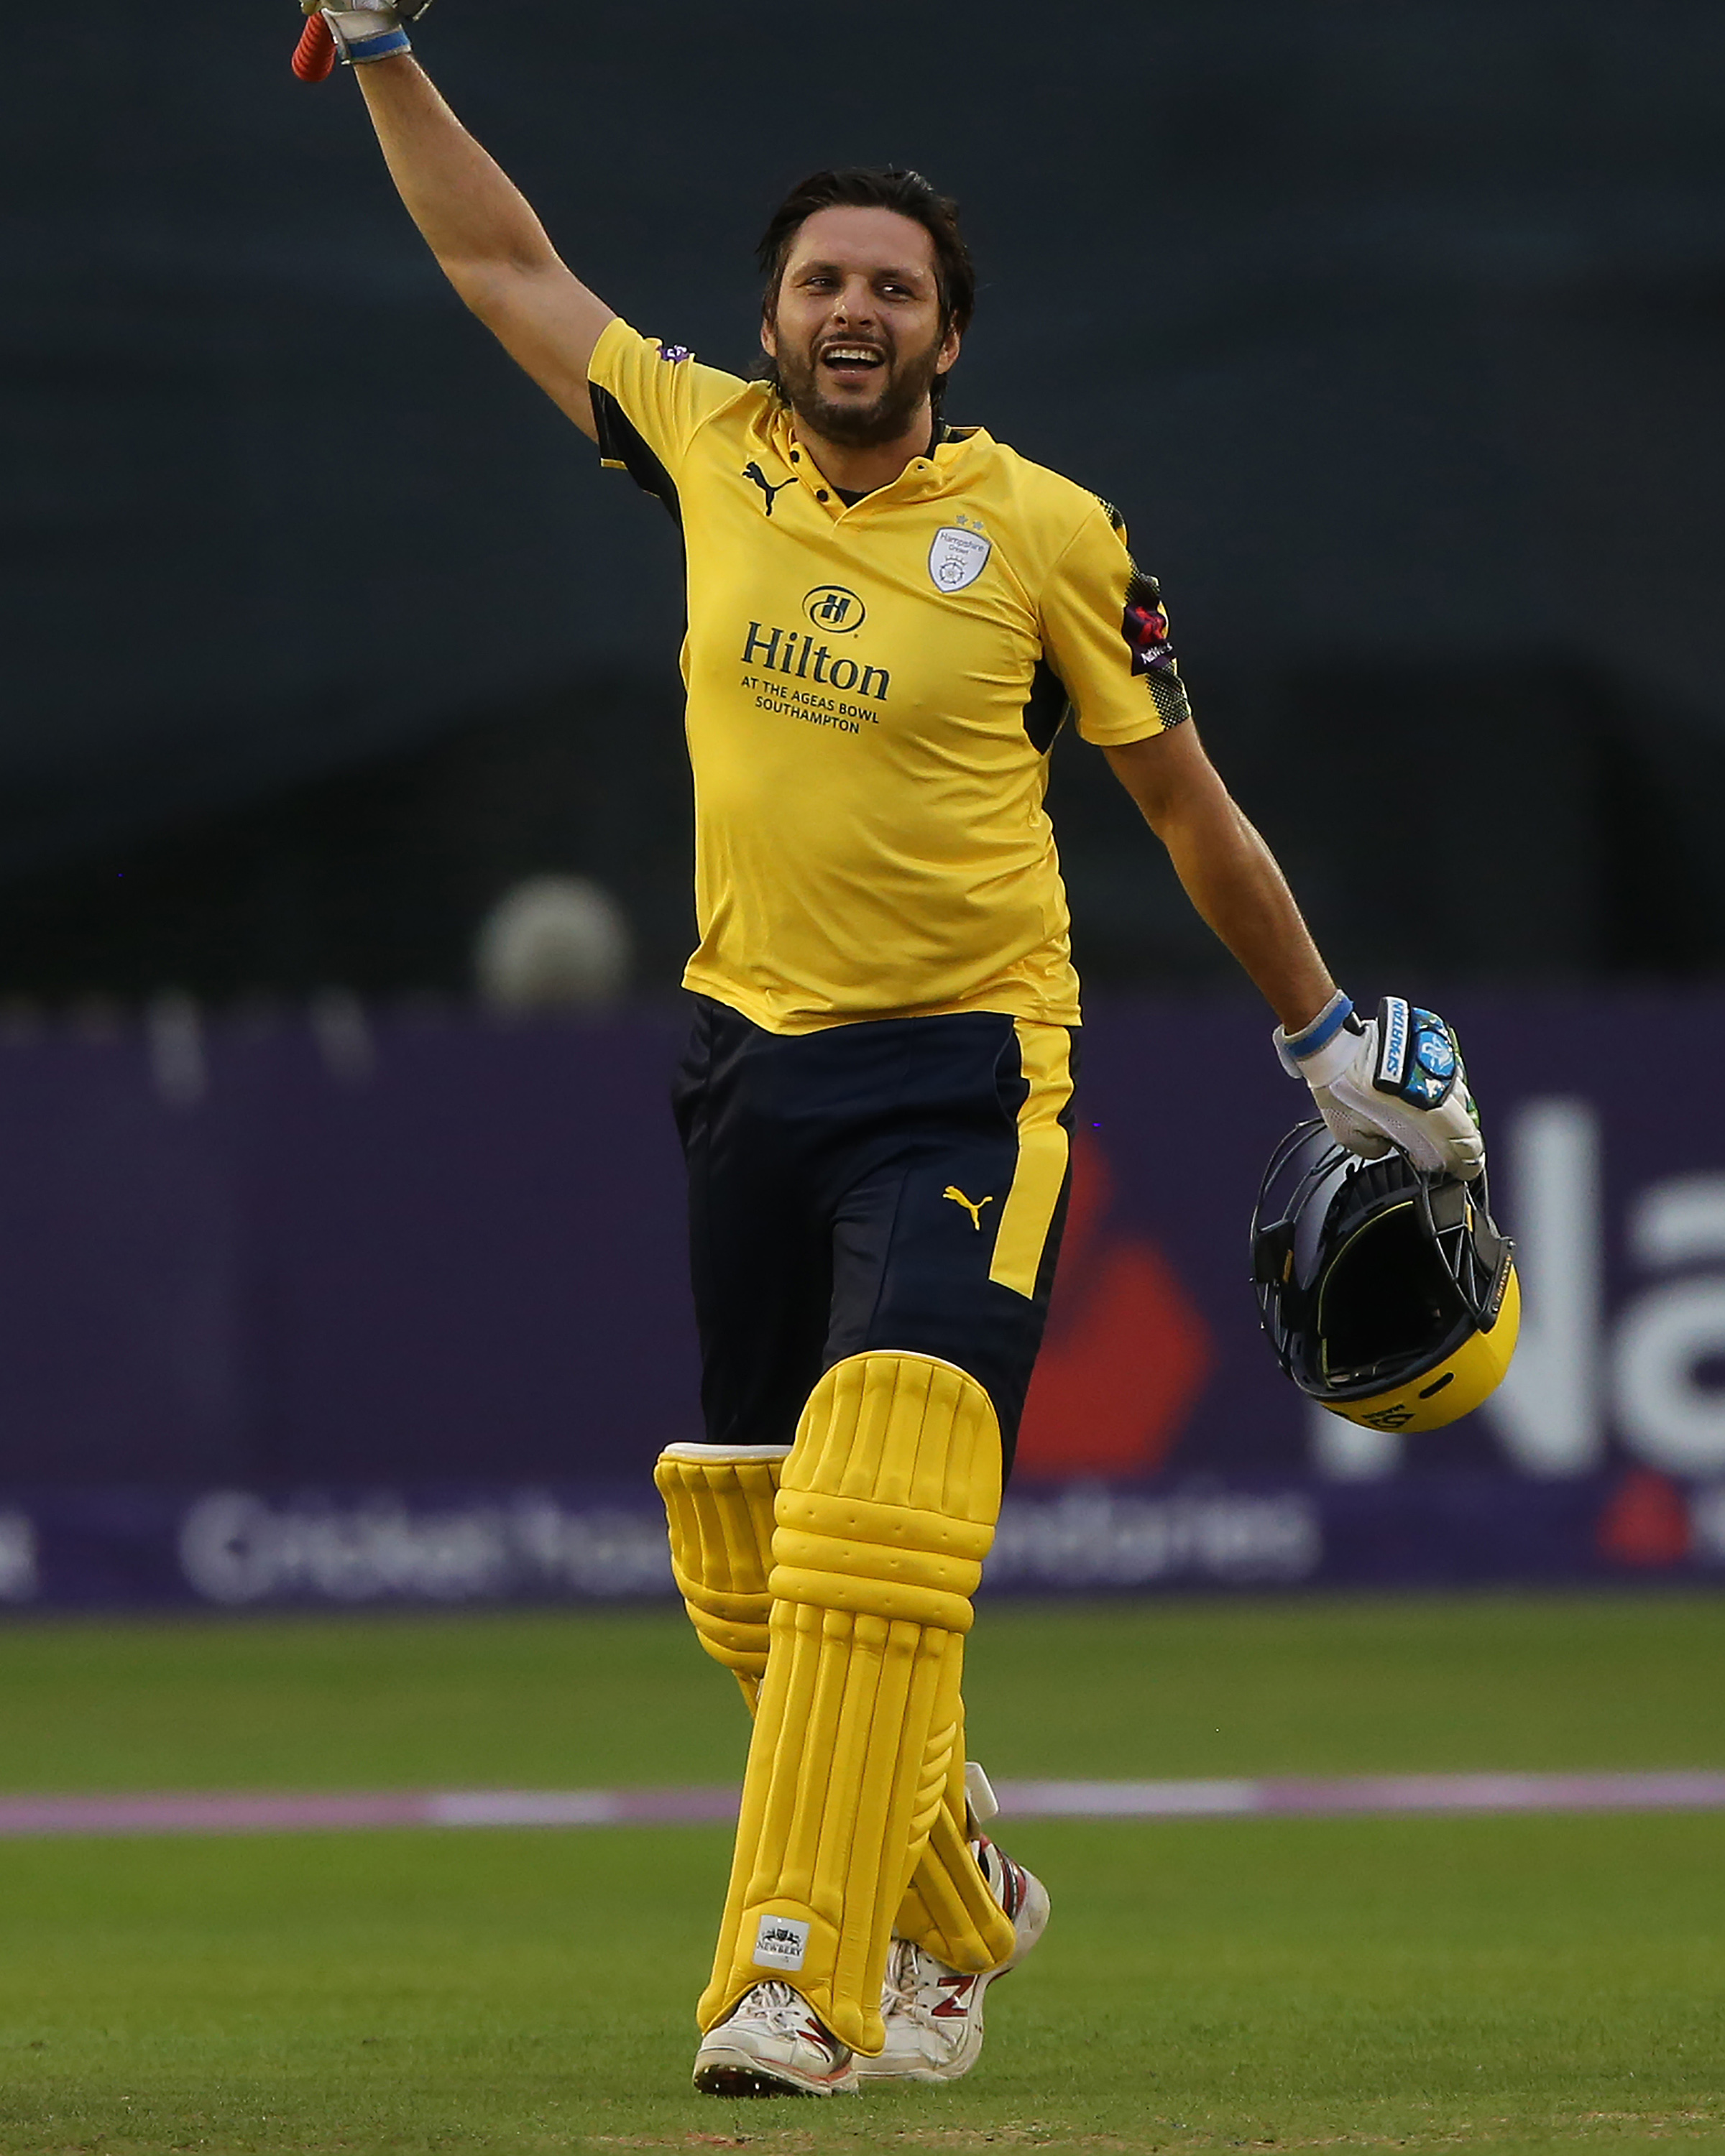 Afridi's 42-ball ton is the 12th fastest in T20 history // Getty